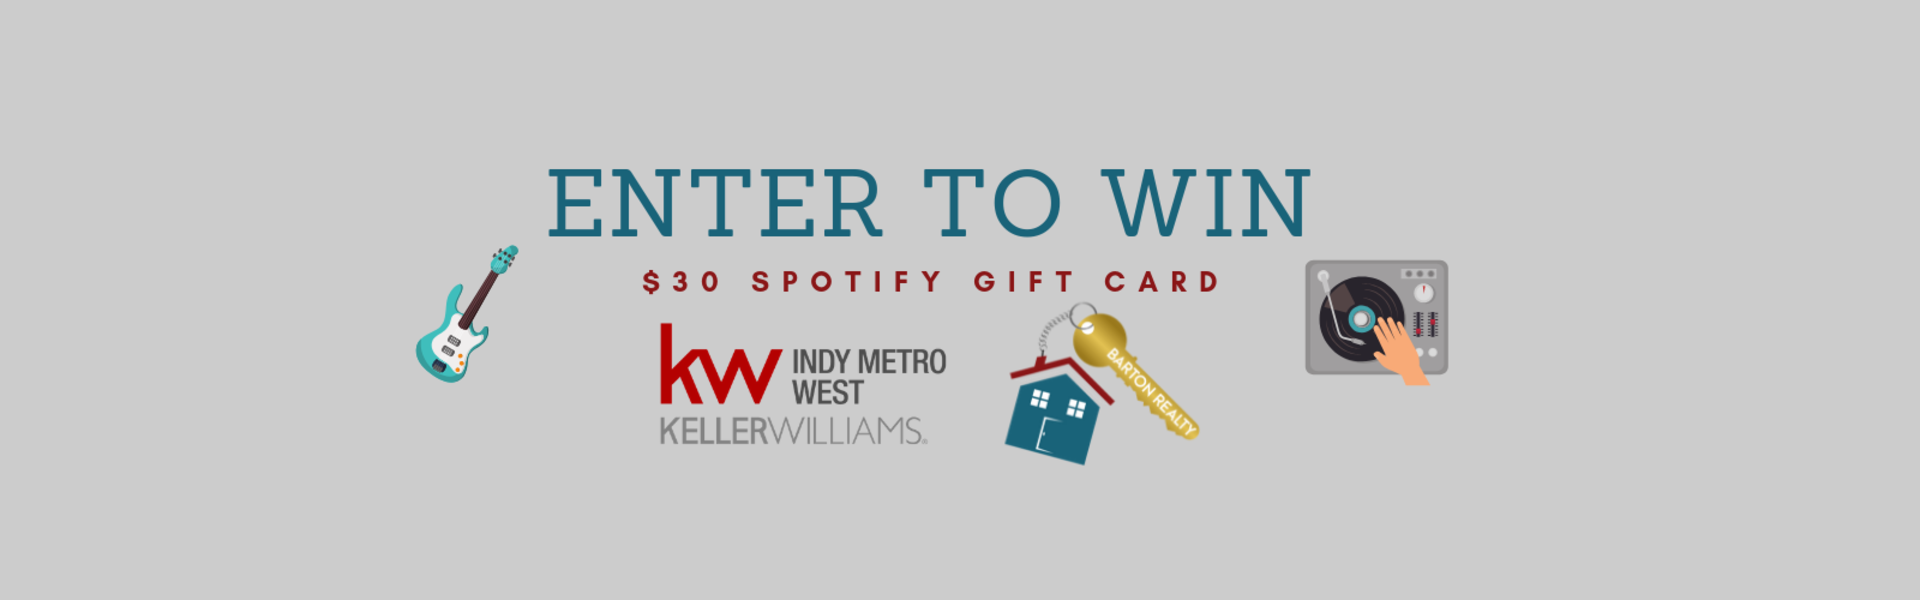 Enter to win- $30 Spotify Gift Card